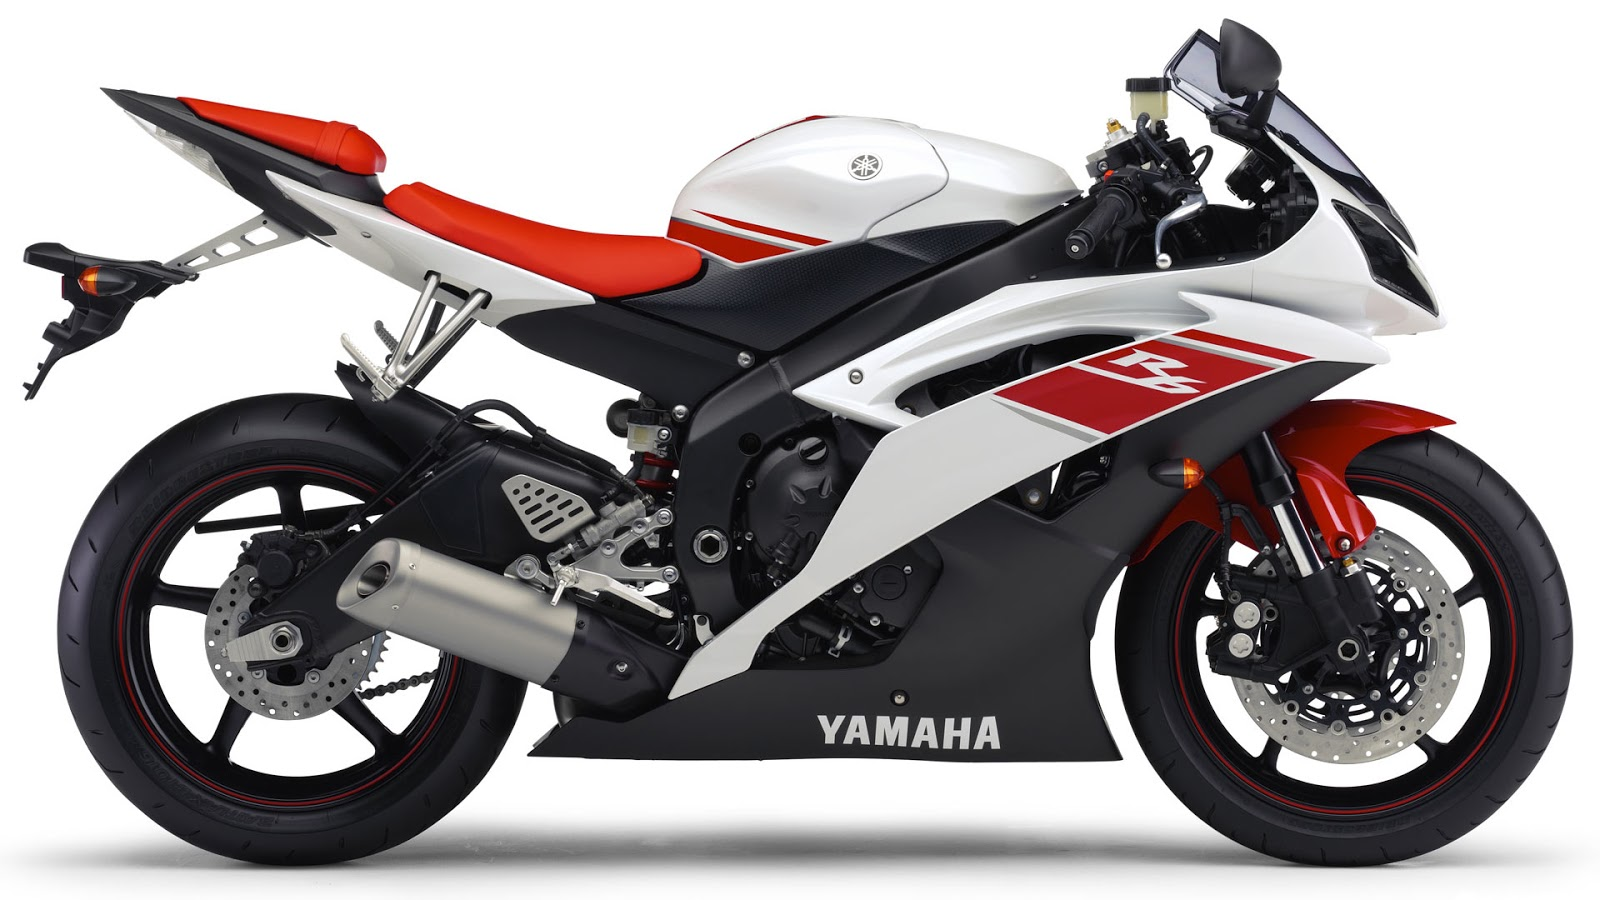 Indian Sports Bikes Bmw Sports Bike Yamaha Sports Bikes High Resolution Hd Wallpapers Free